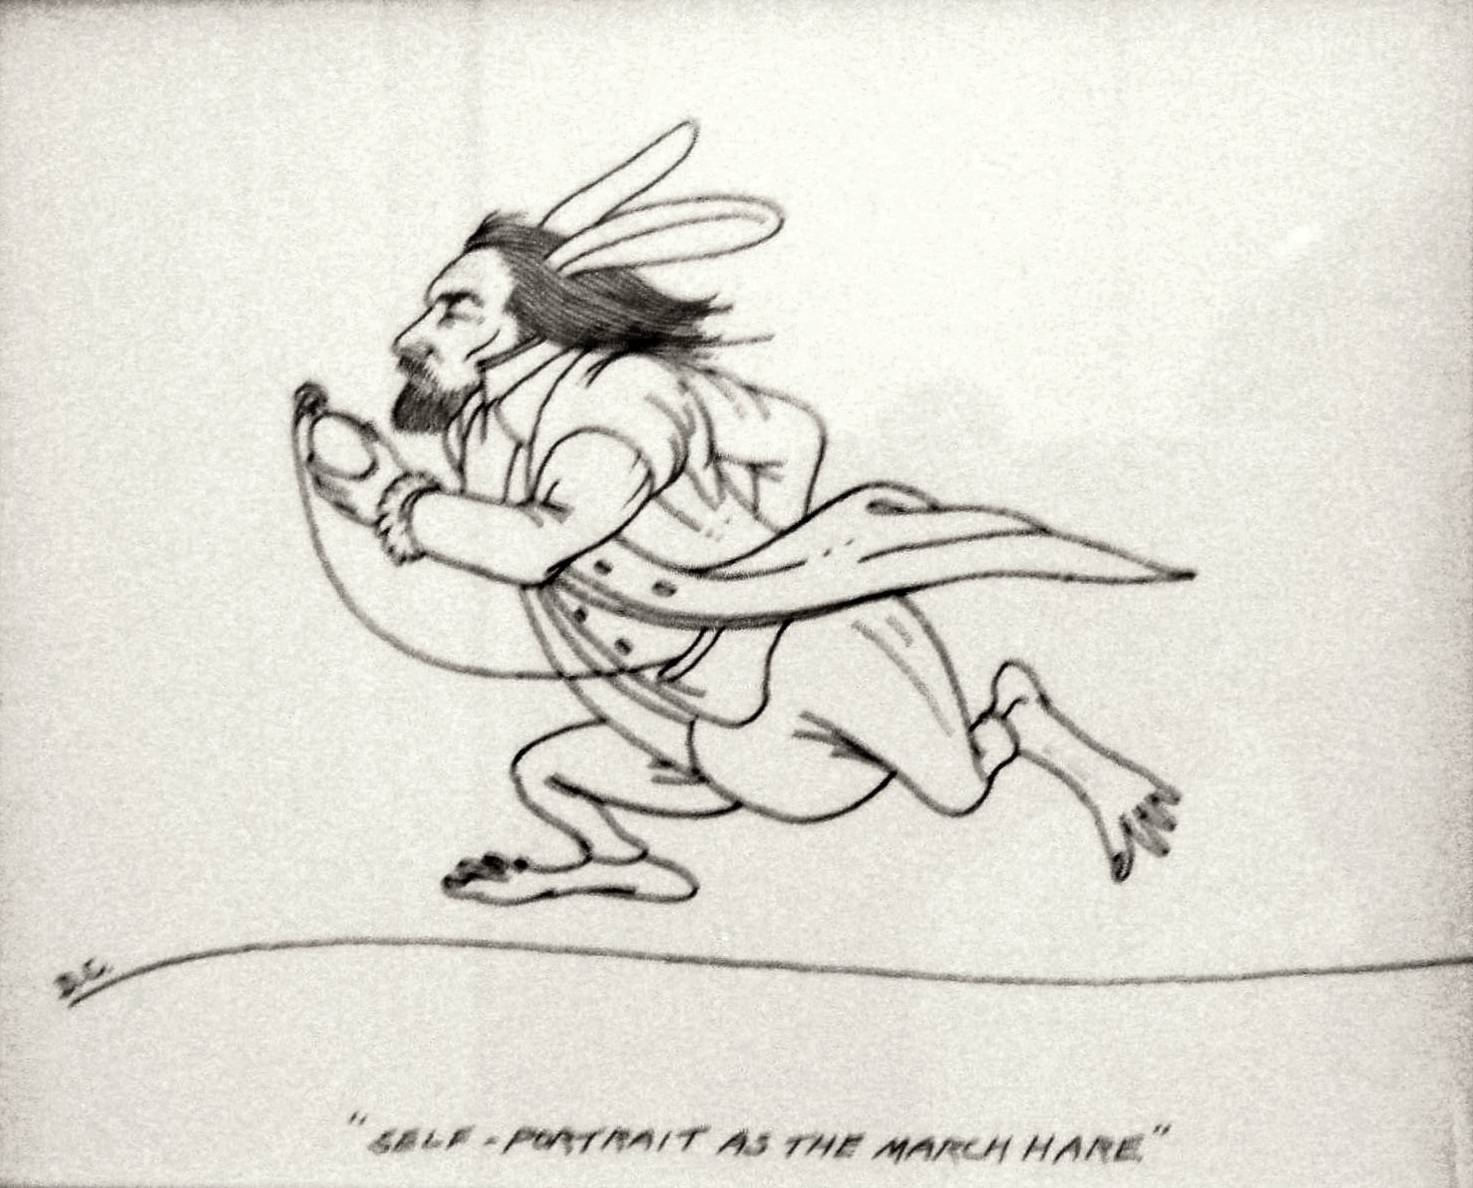 Dennis Corrigan: Self-Portrait as the March Hare, Pen & Ink